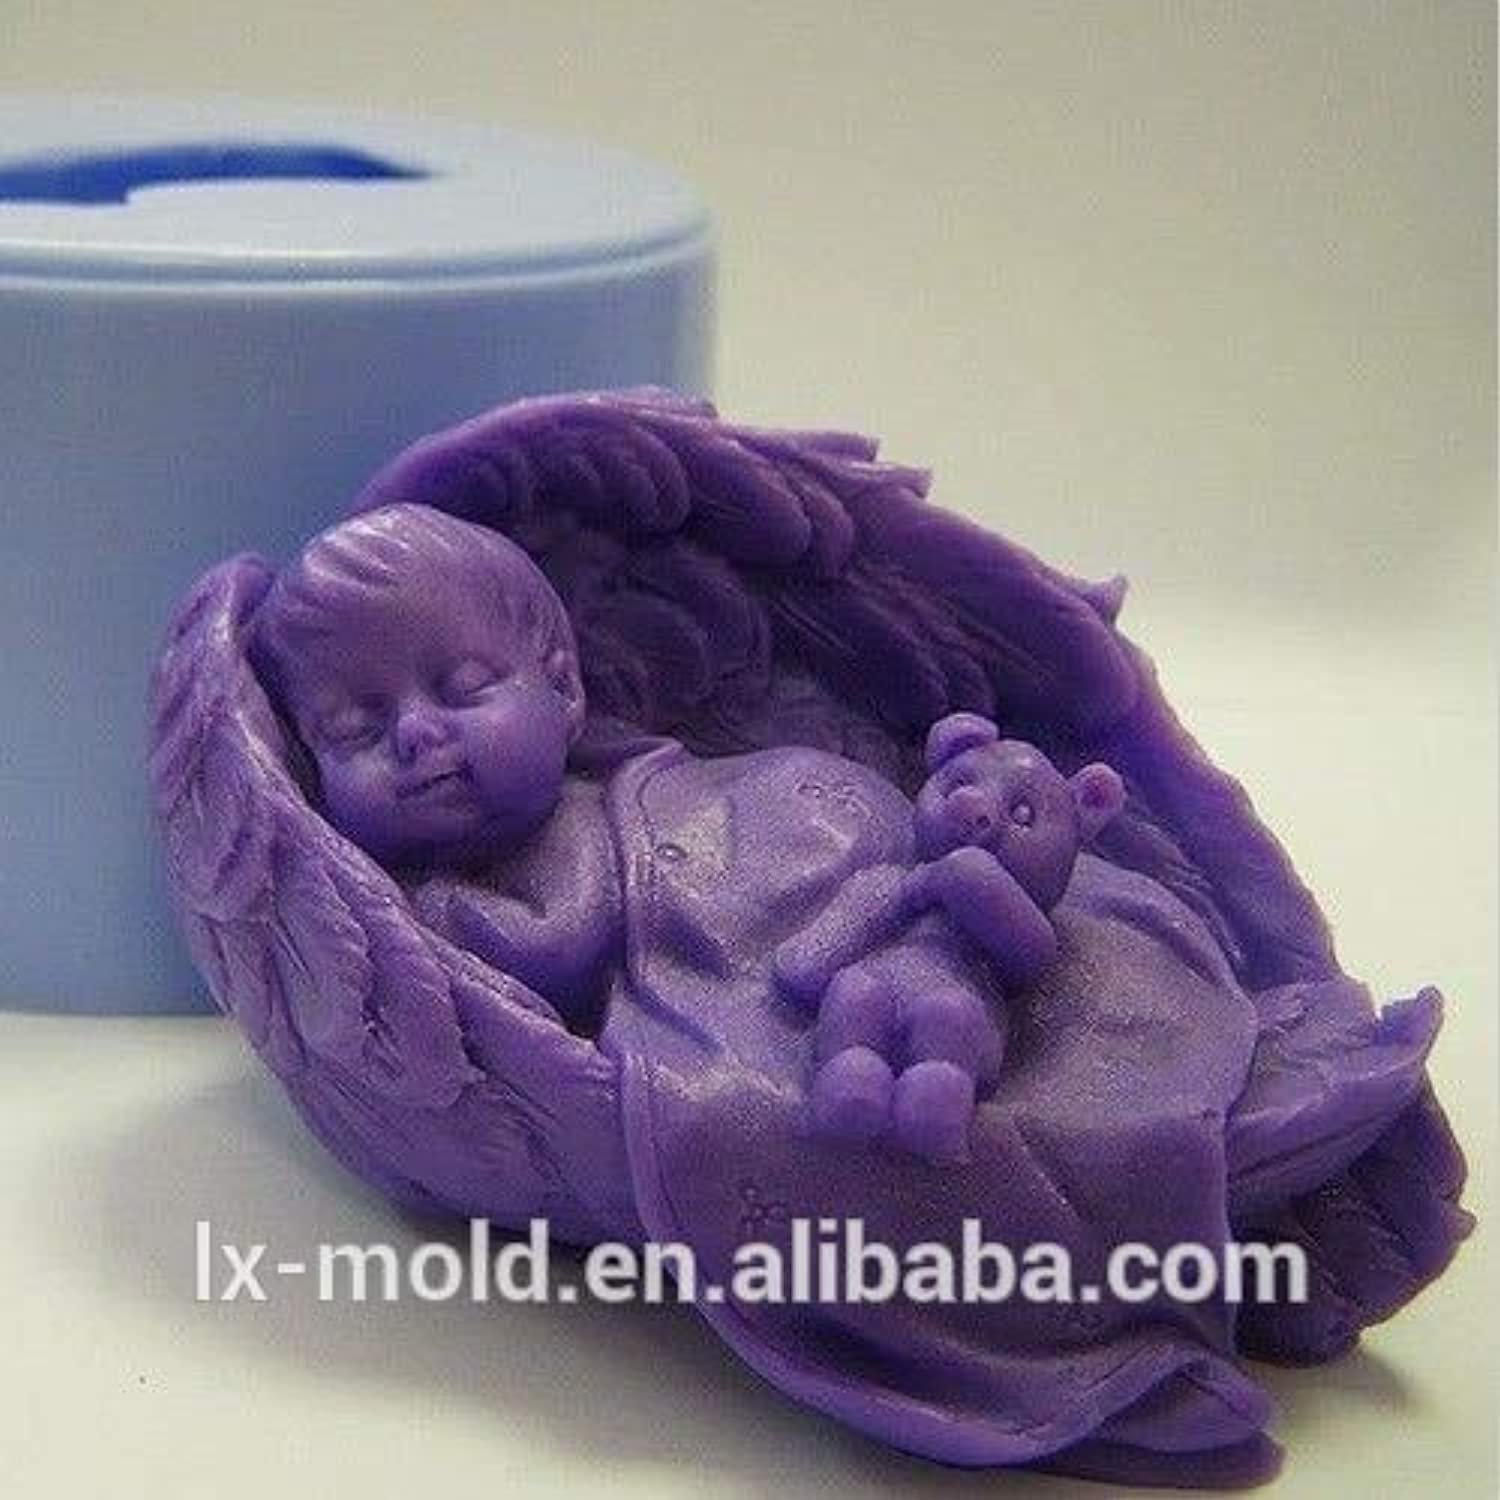 Zoomy in Wing with Bear 3D Silicone molds Handmade soap Mold